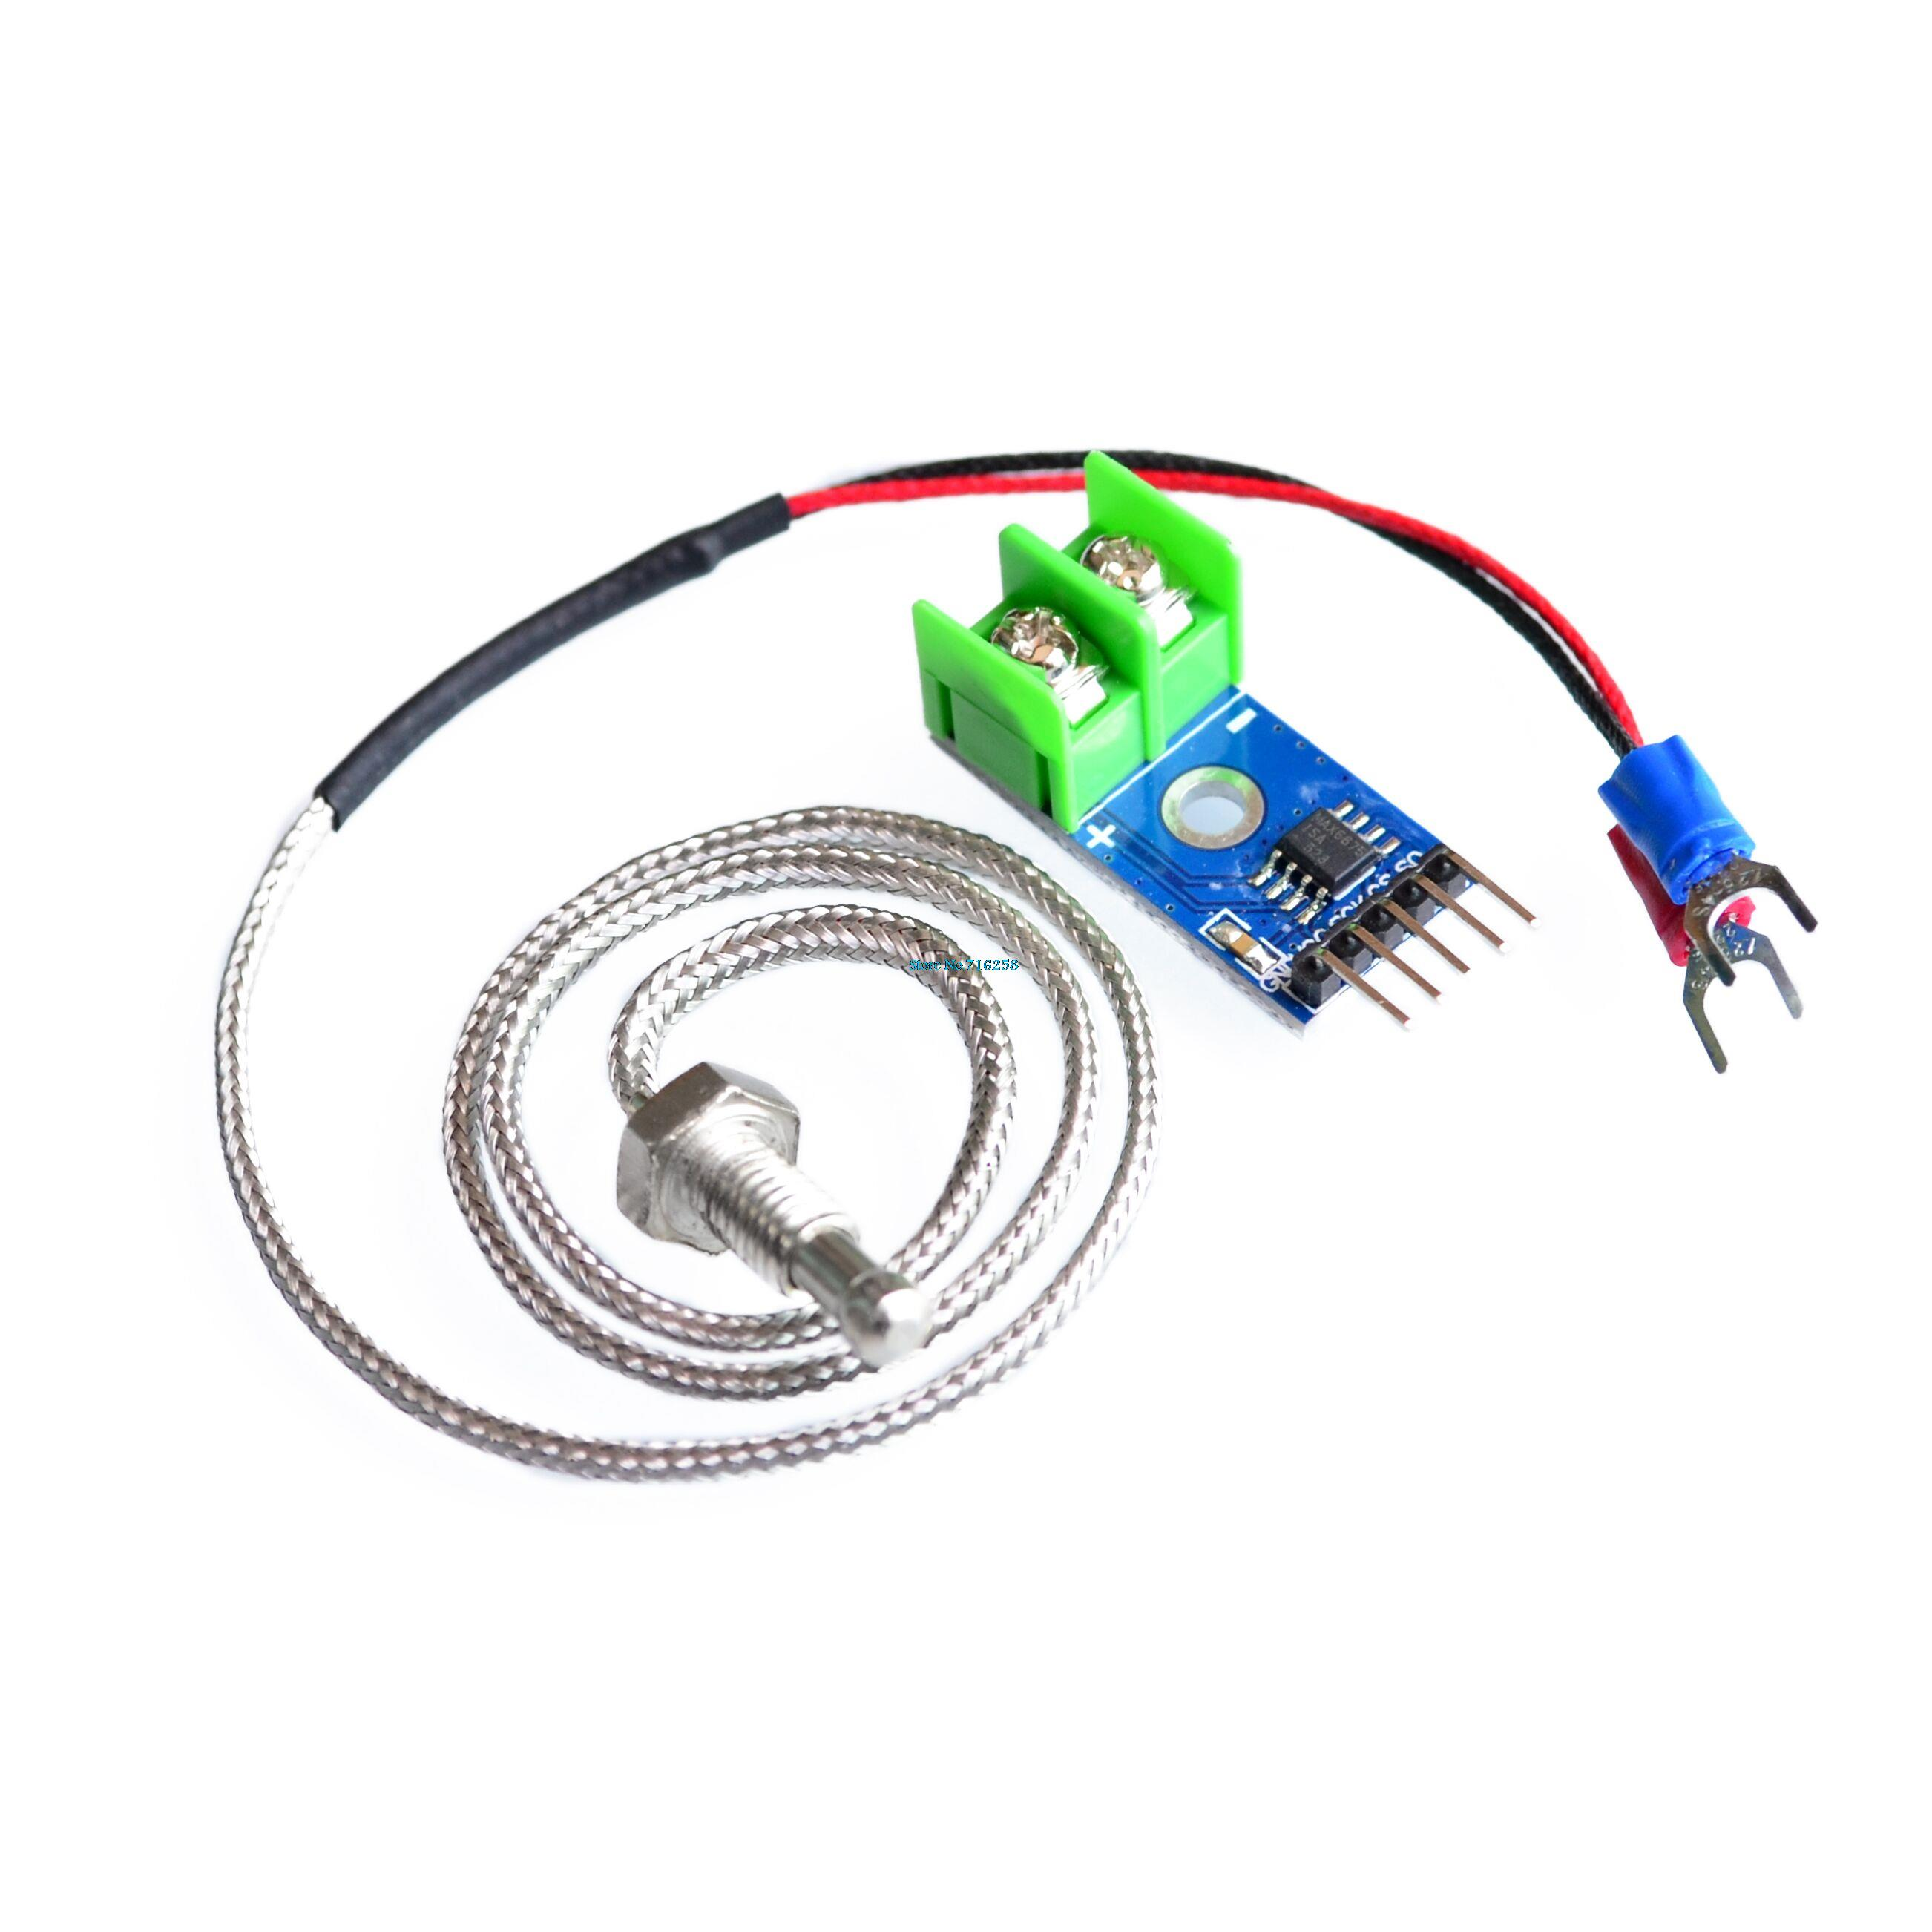 MAX6675 Module + Type Thermocouple Thermocouple Sensor forMAX6675 Module + Type Thermocouple Thermocouple Sensor for